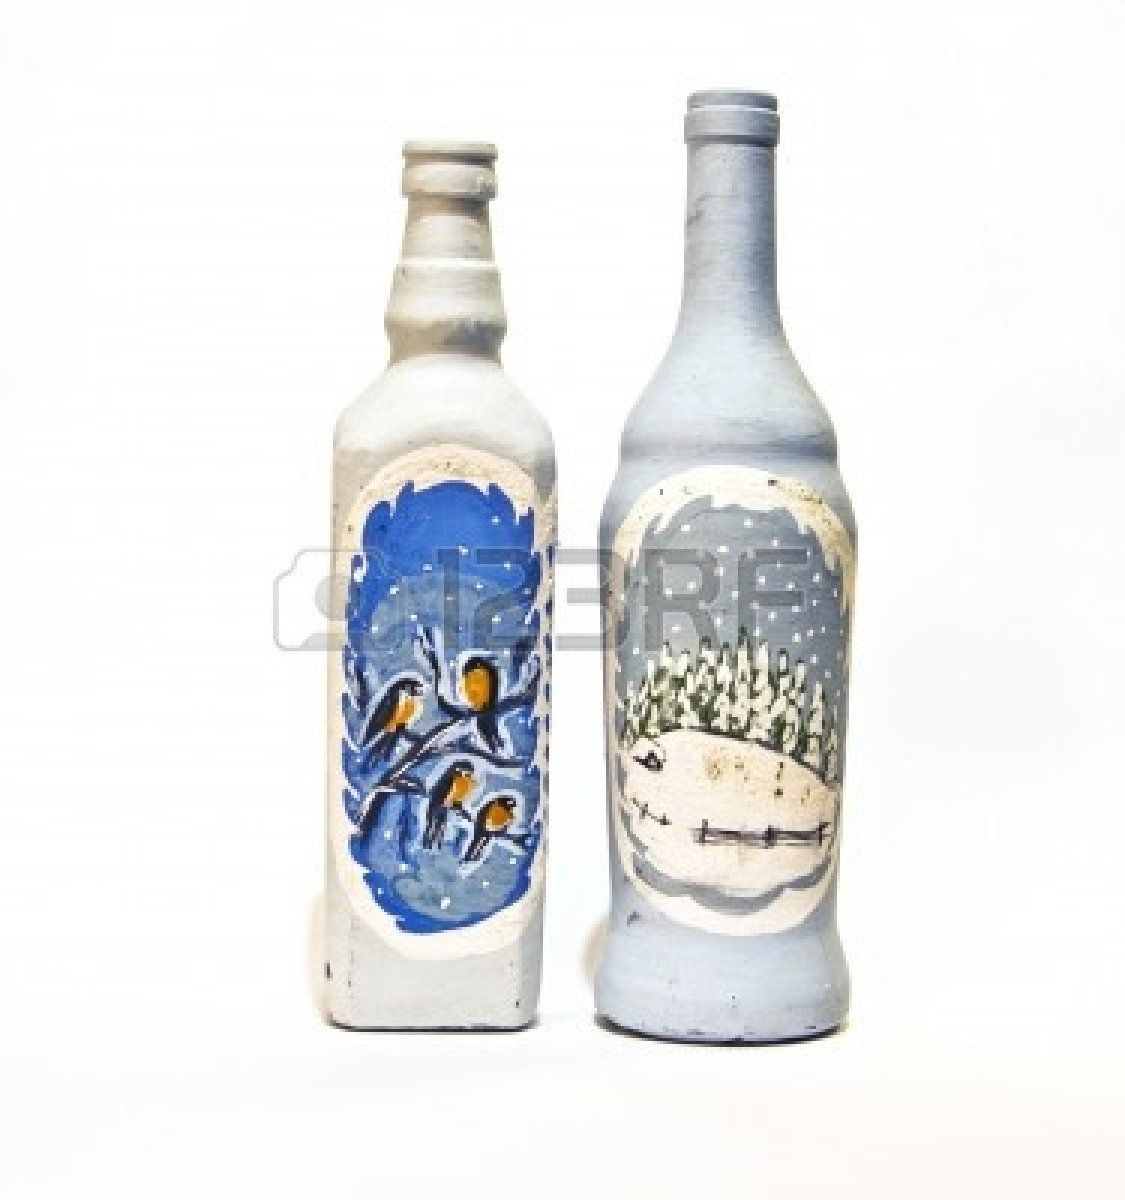 Two bottles hand painted with pictures of winter landscapes.